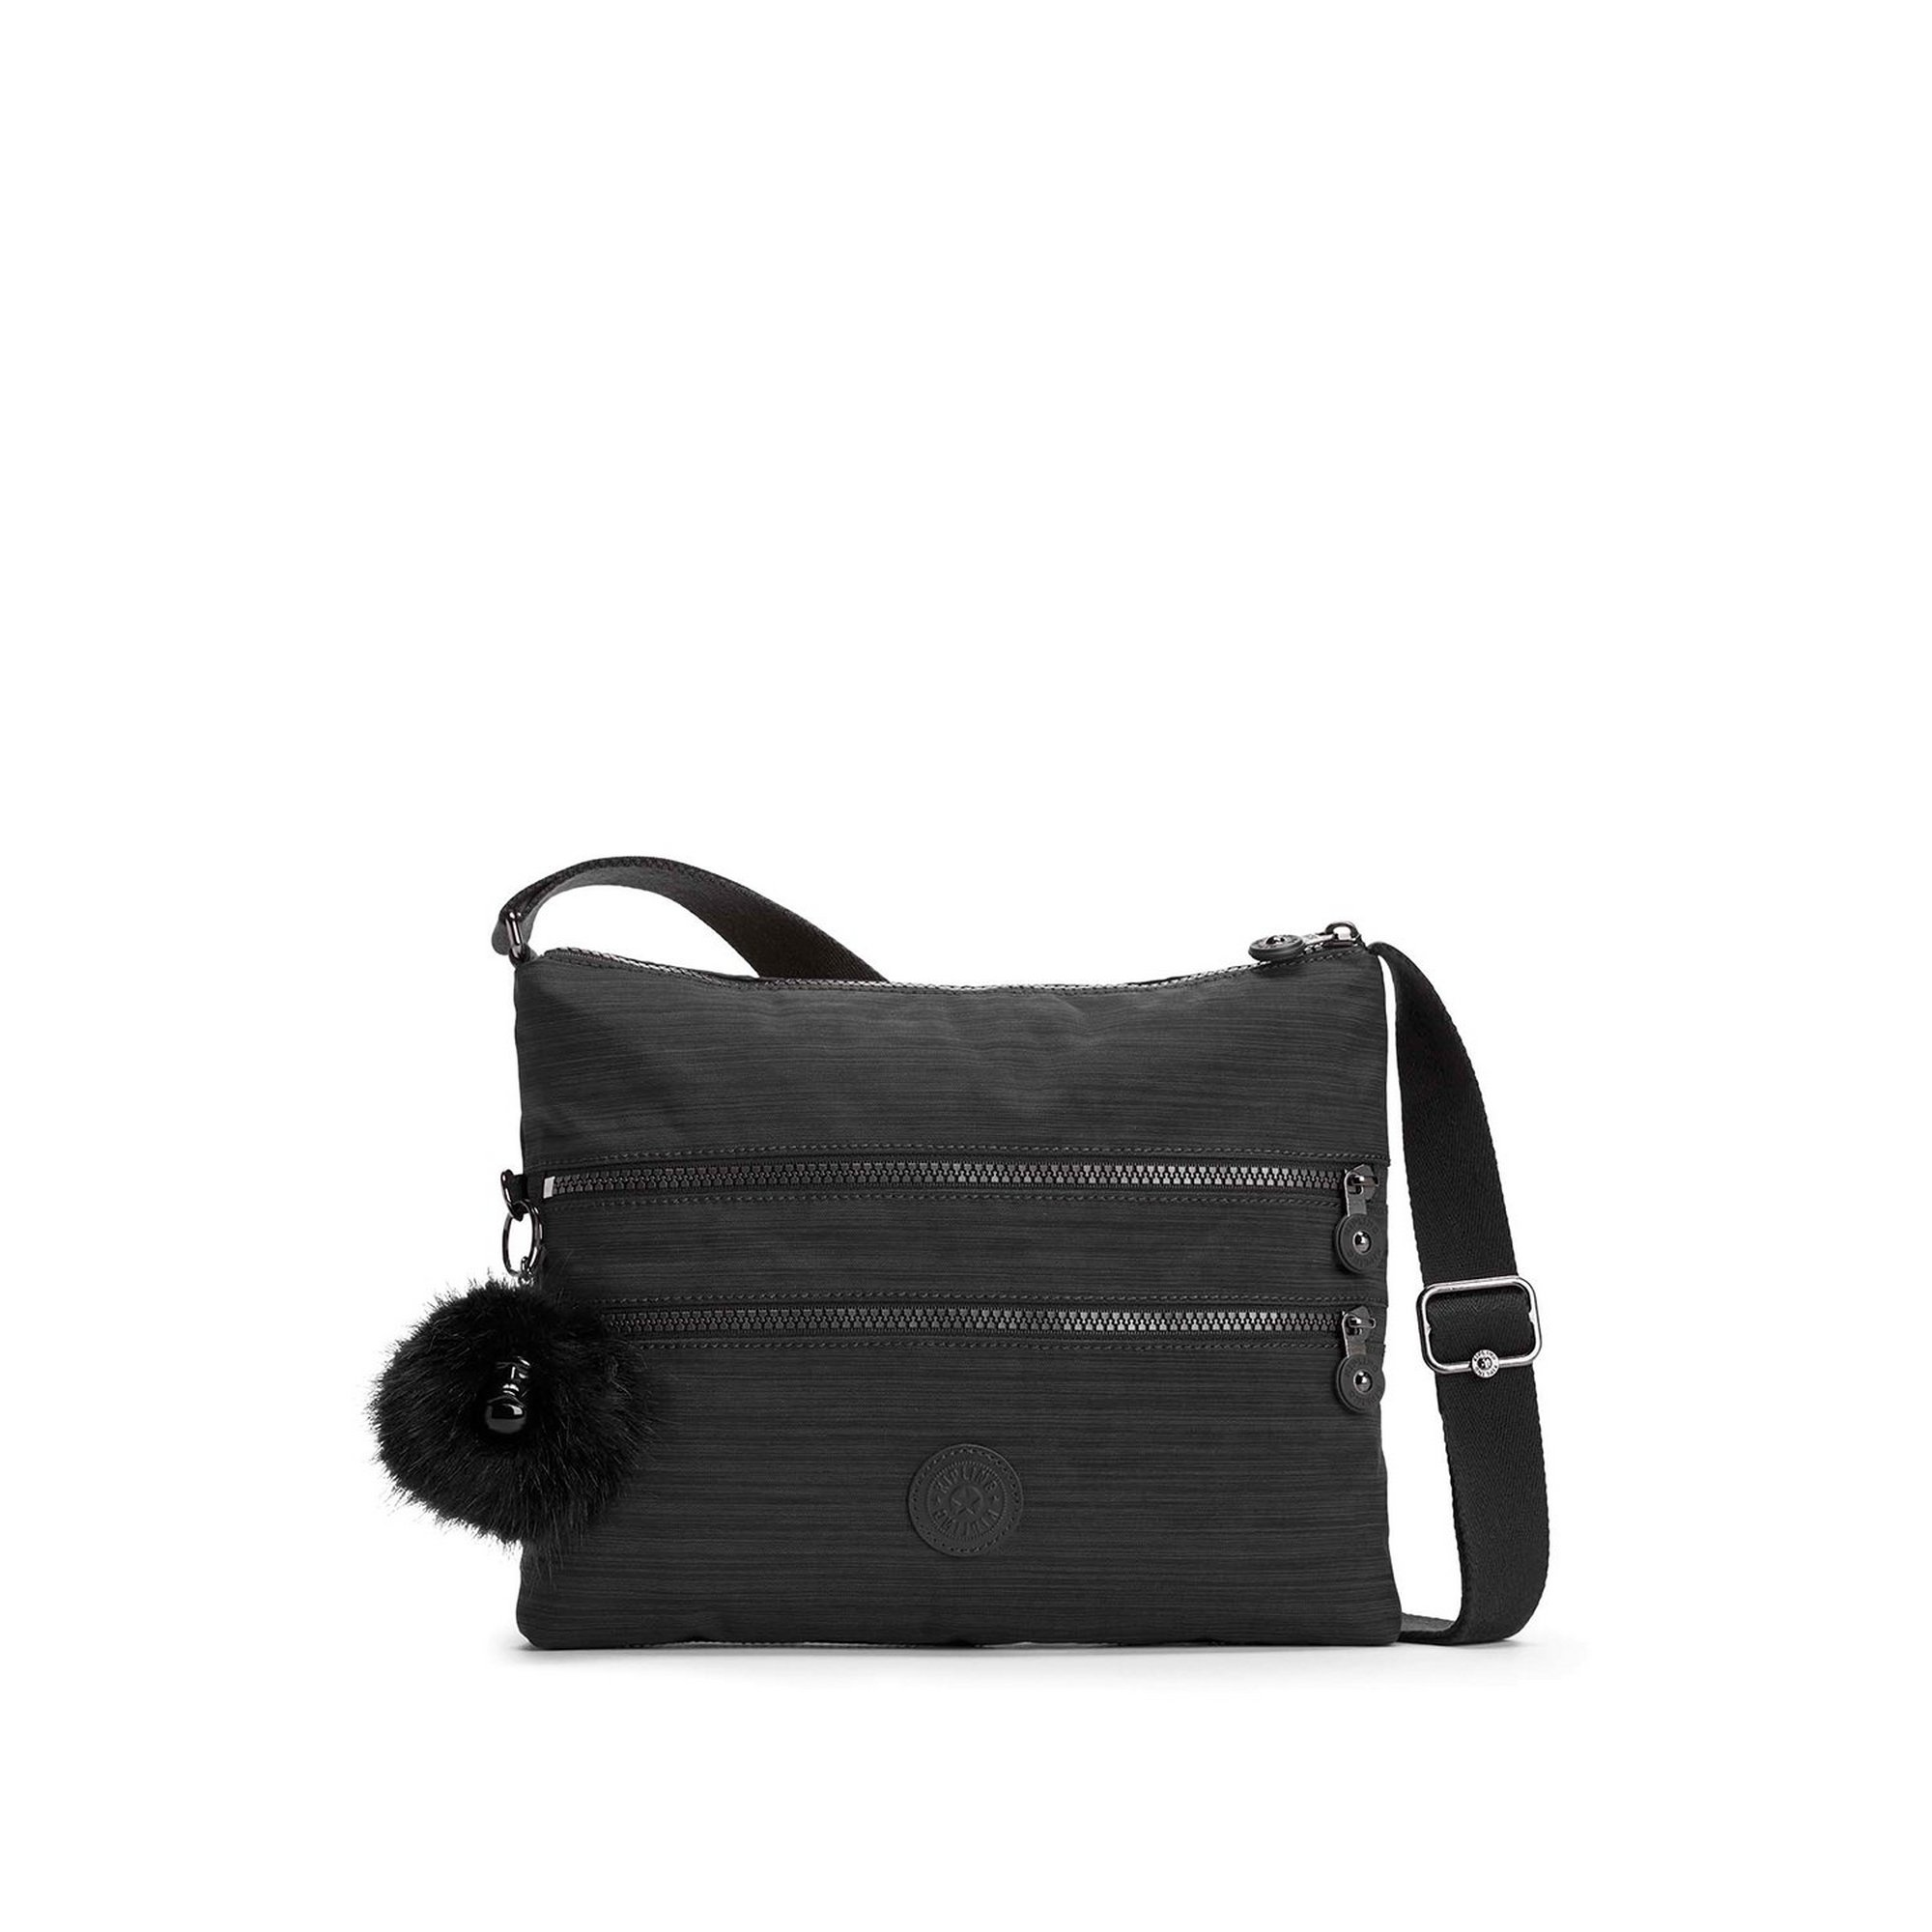 Image of Kipling Alvar Cross Body Bag